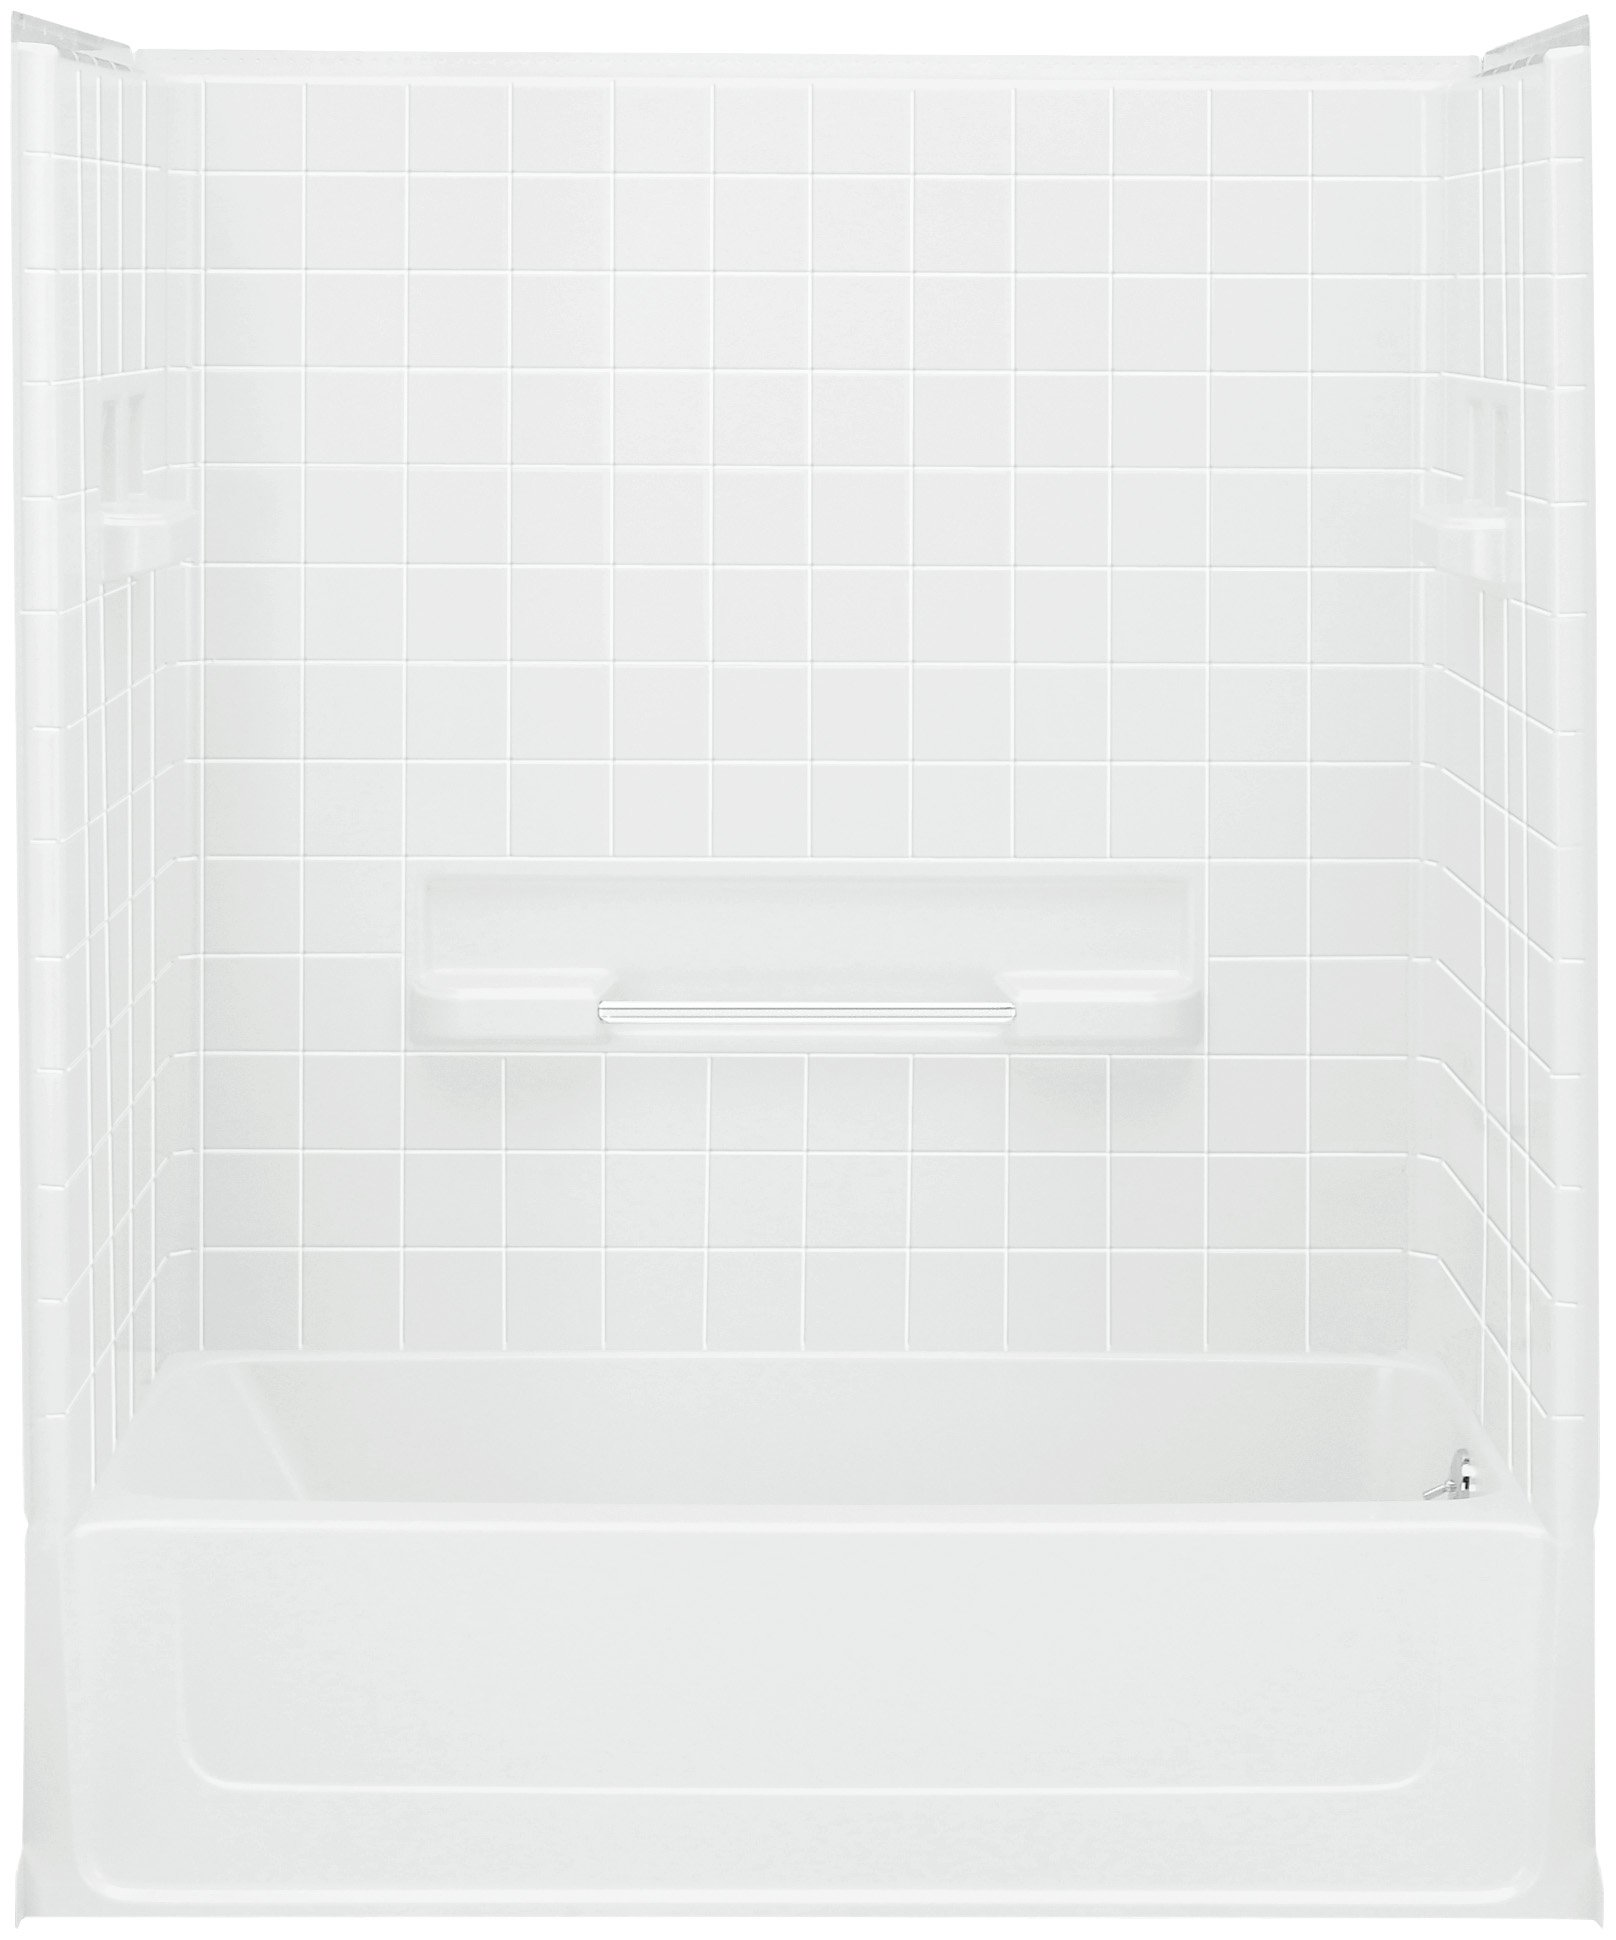 Sterling Plumbing 61040120-0 All Pro Bath and Shower Kit, 60-Inch x 30-Inch x 73.5-Inch, Right-Hand, White